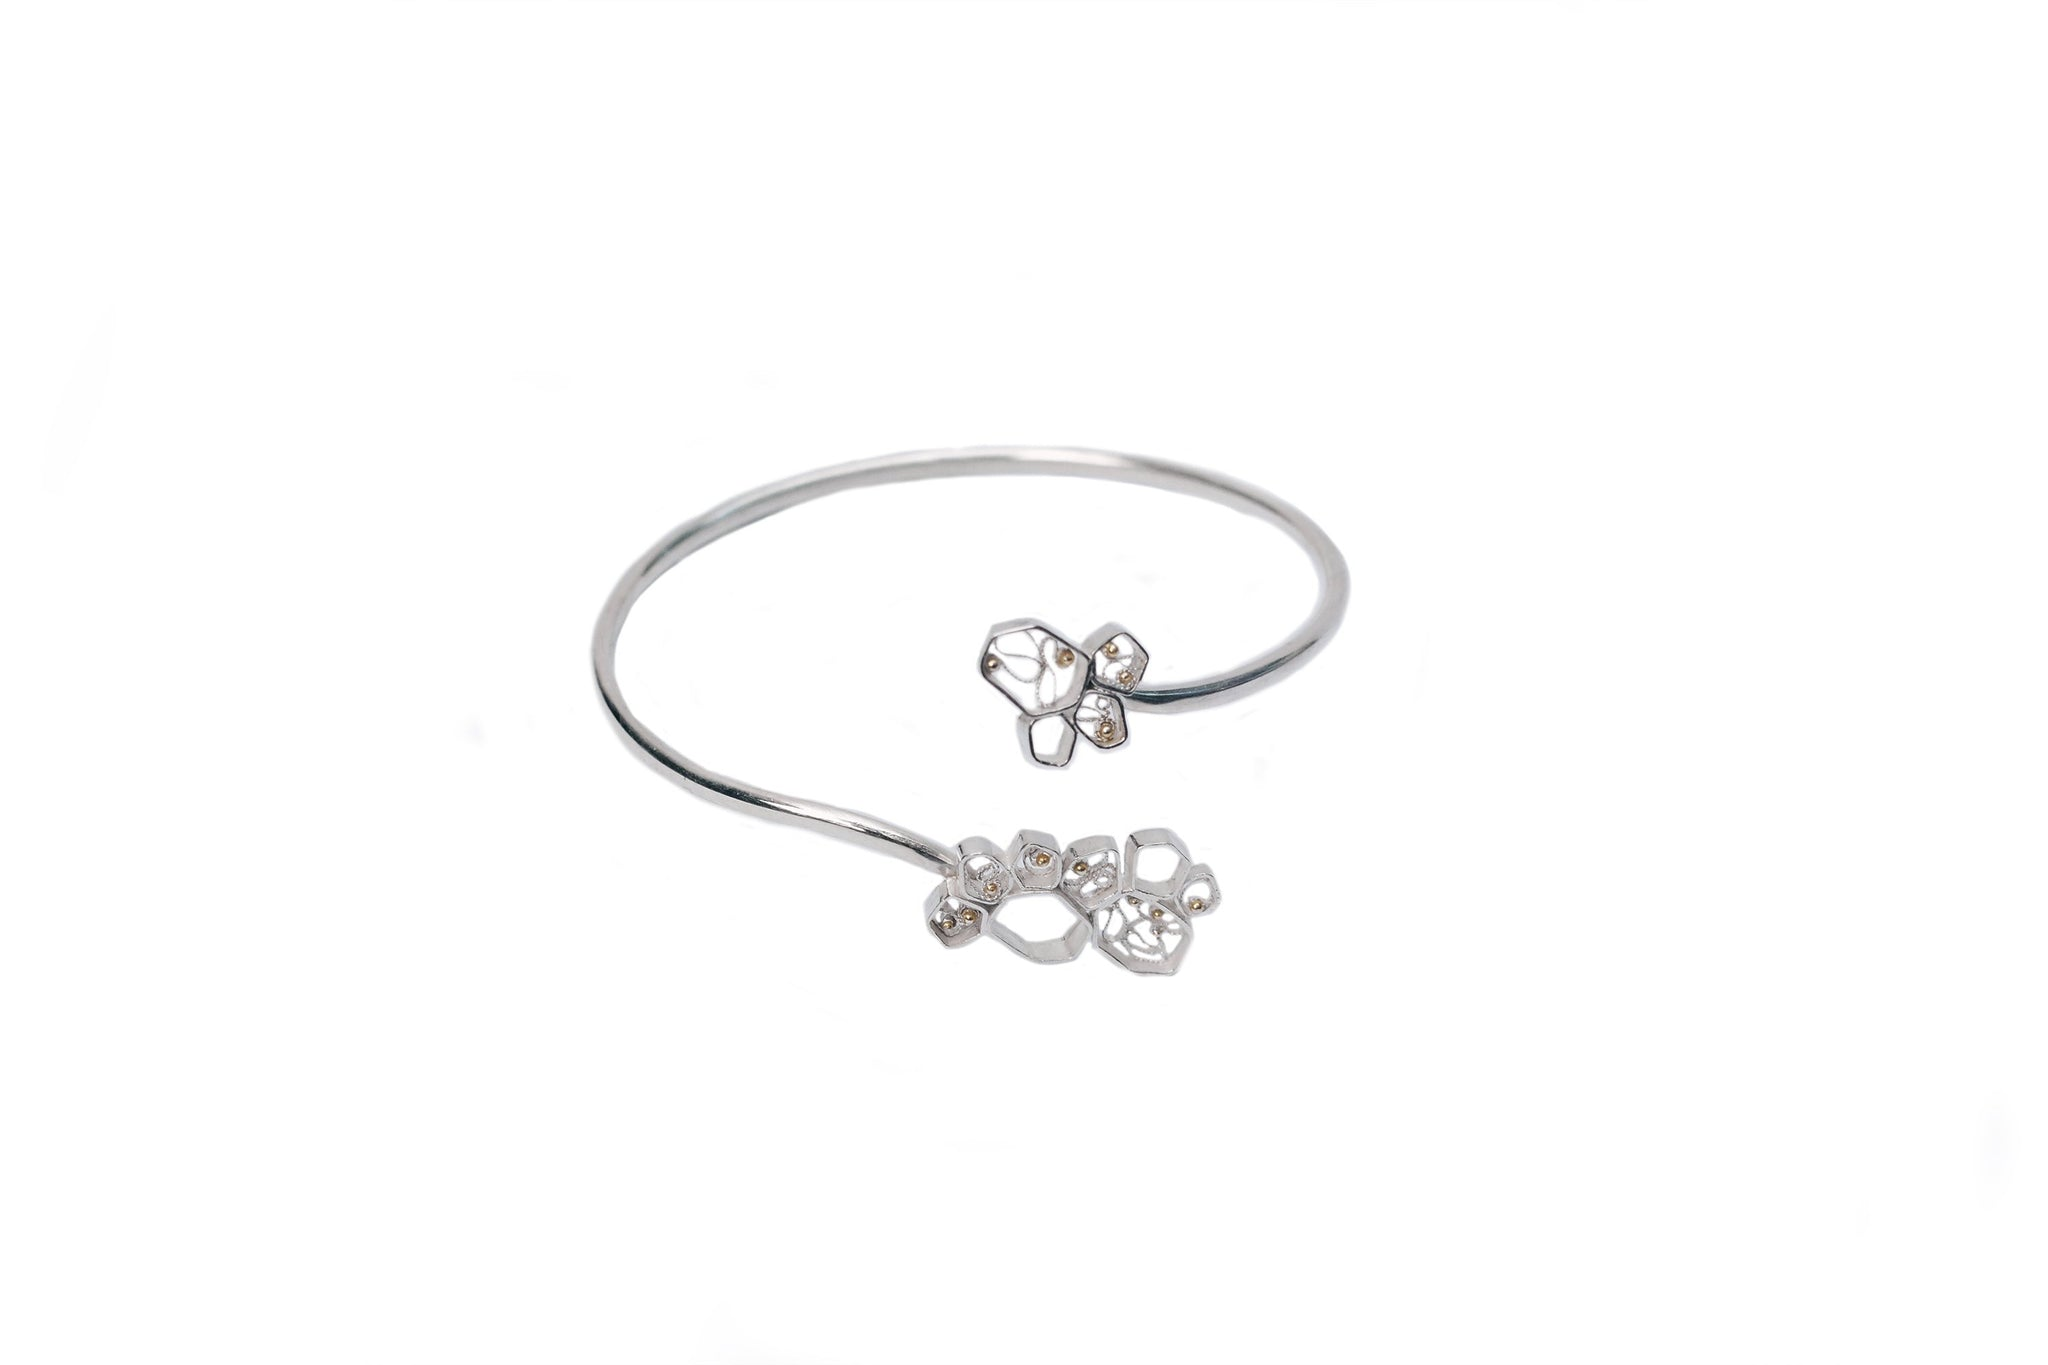 Cells Gold and Silver Bracelet - Lesetta